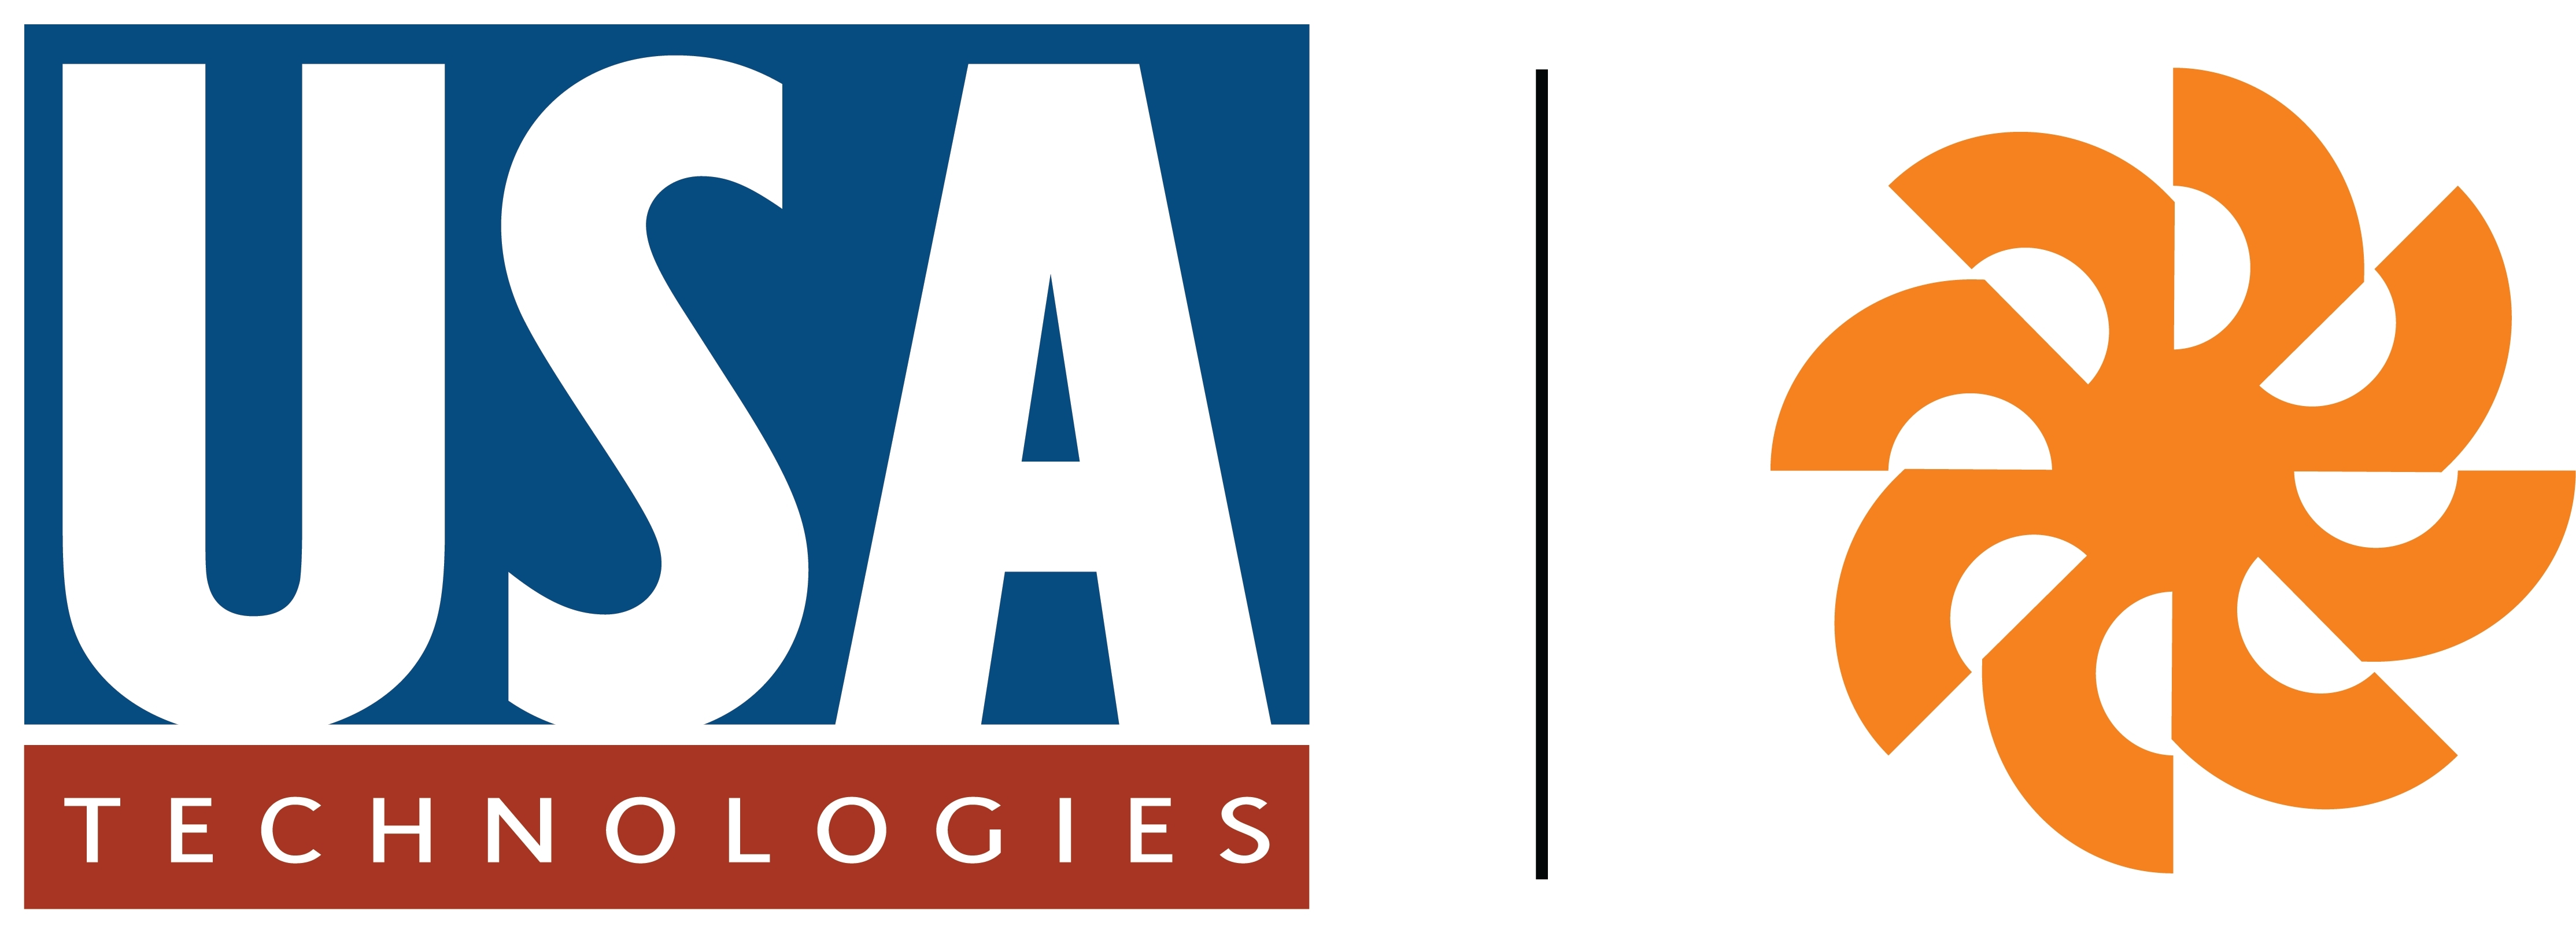 Usa Technologies Announces Rebrand To Cantaloupe Business Wire We helped cantaloupe systems tell the story of their ability to improve vending systems with innovative technology. usa technologies announces rebrand to